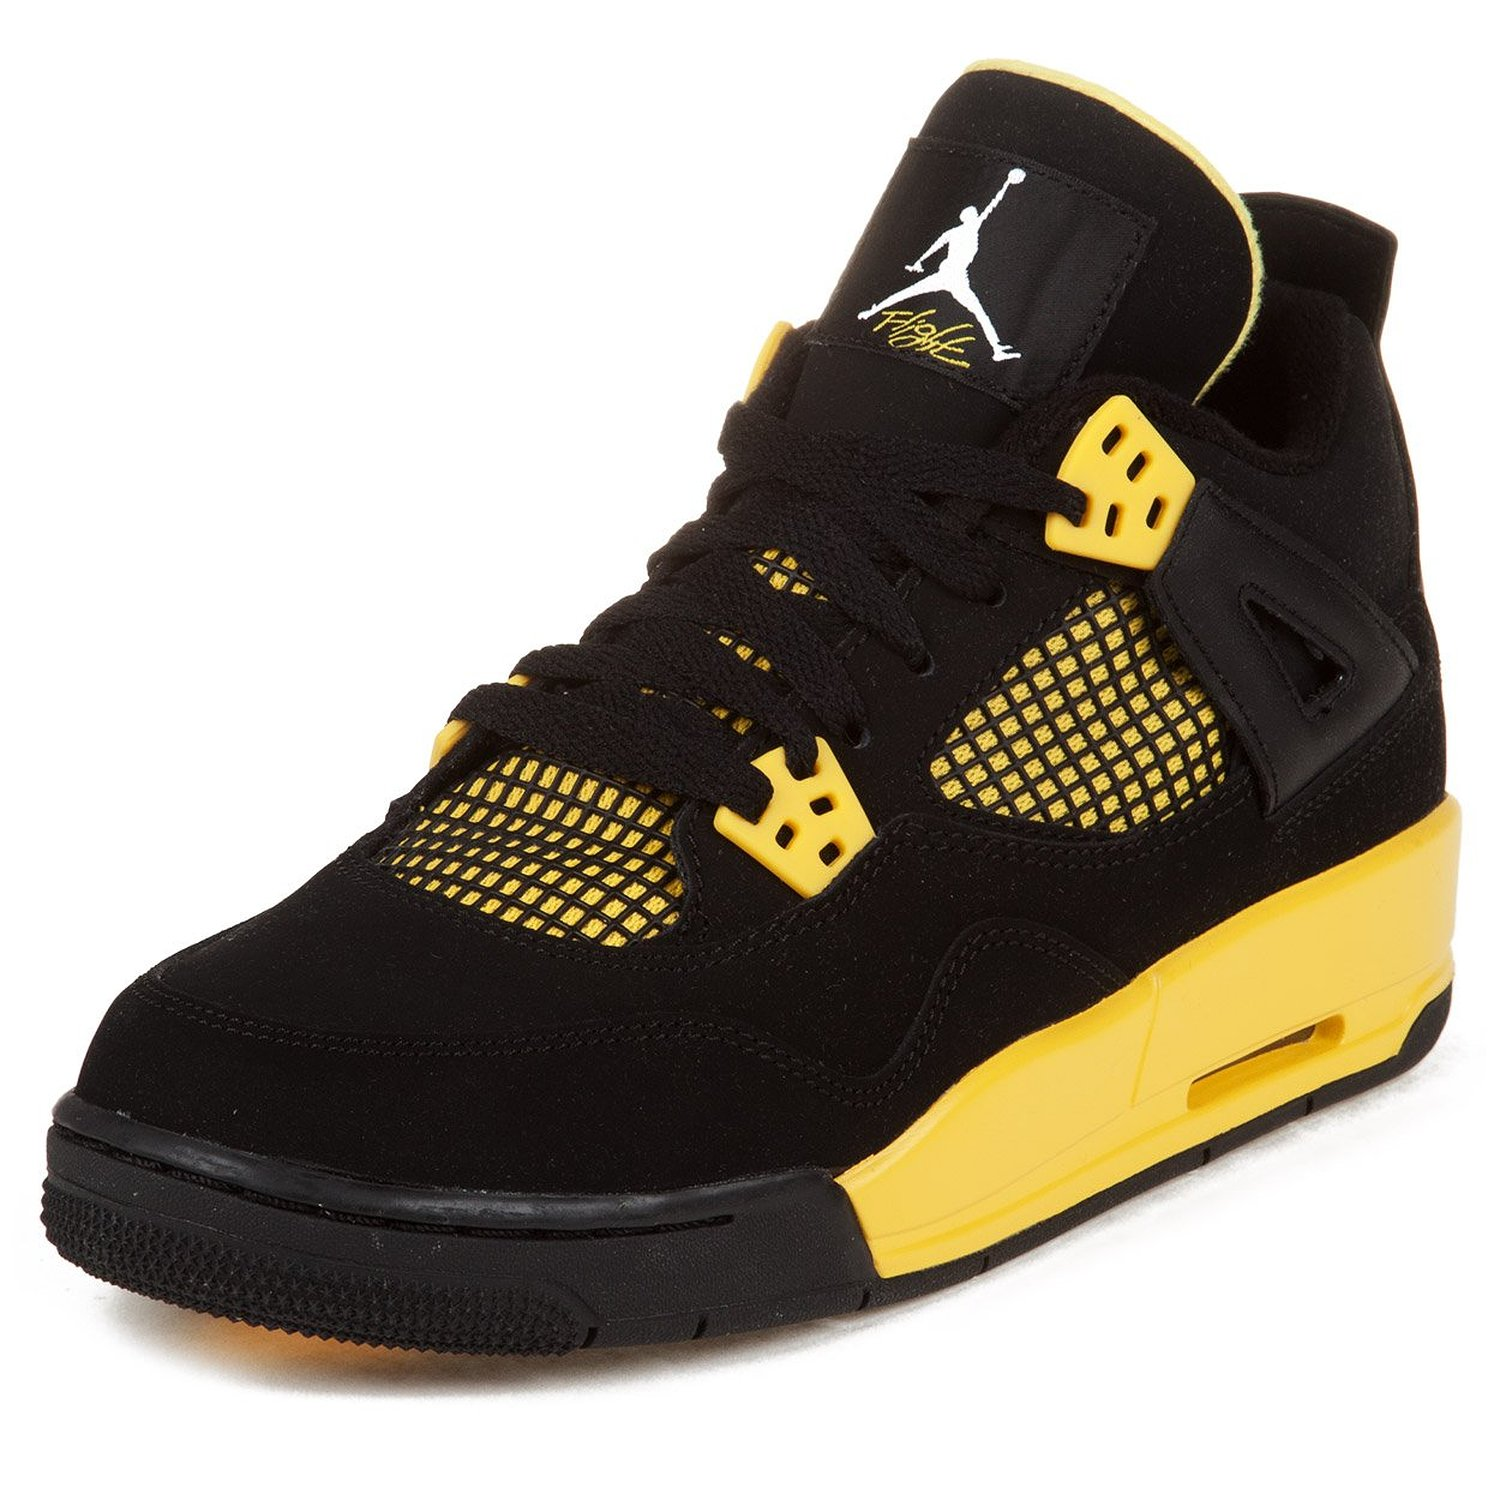 c000e31d70eb04 Get Quotations · AIR JORDAN 4 RETRO (GS)  THUNDER  - 408452-008